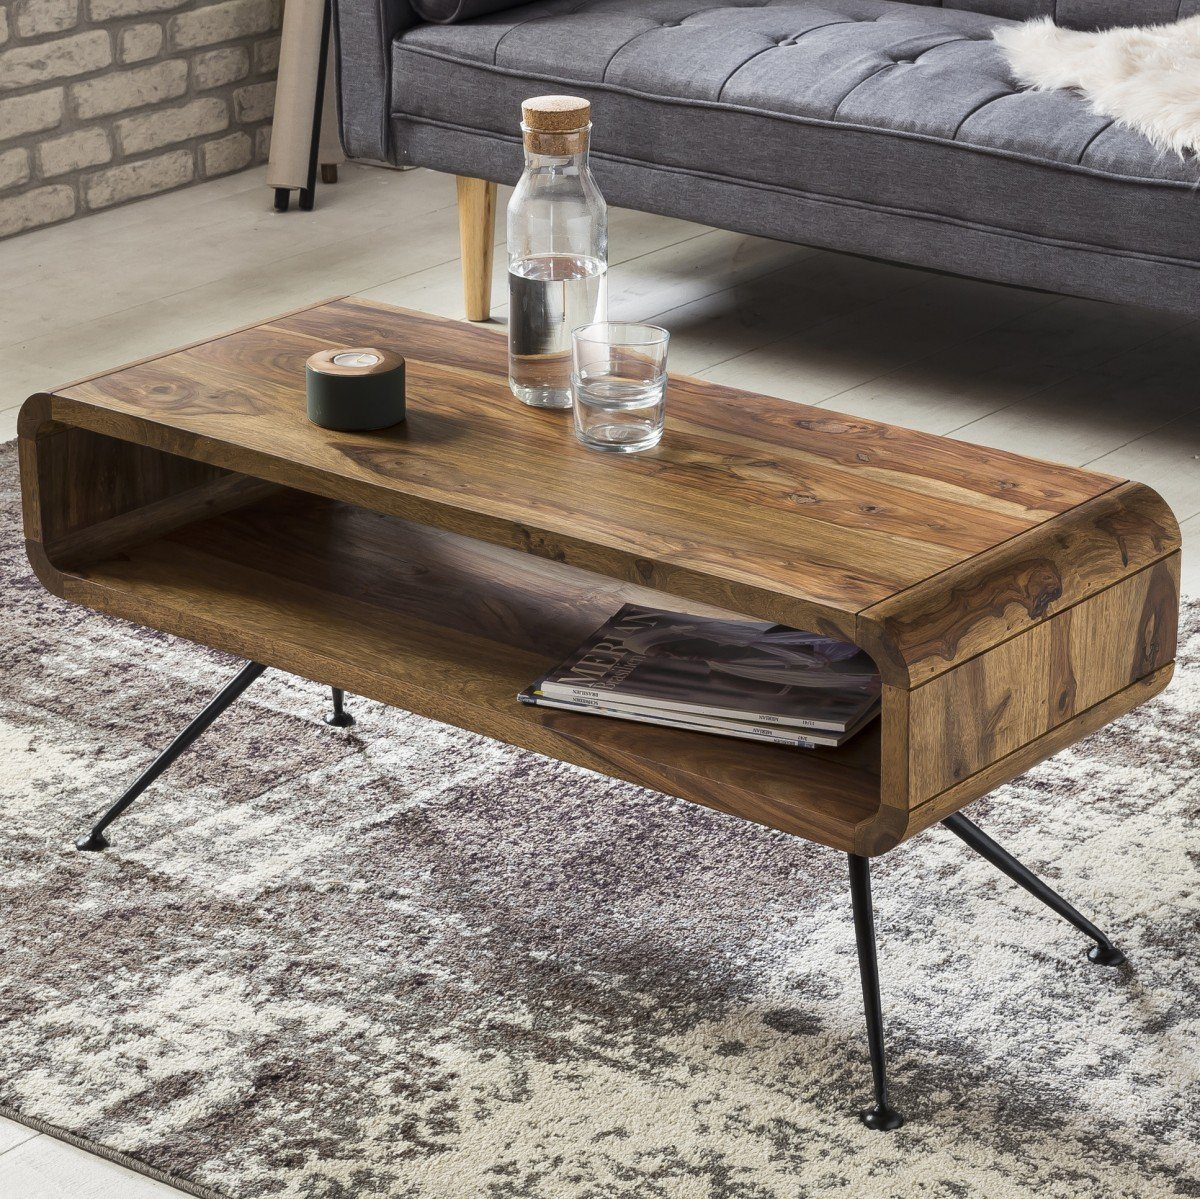 Buy Solid Wood Curved Rocket Coffee Table Online  New